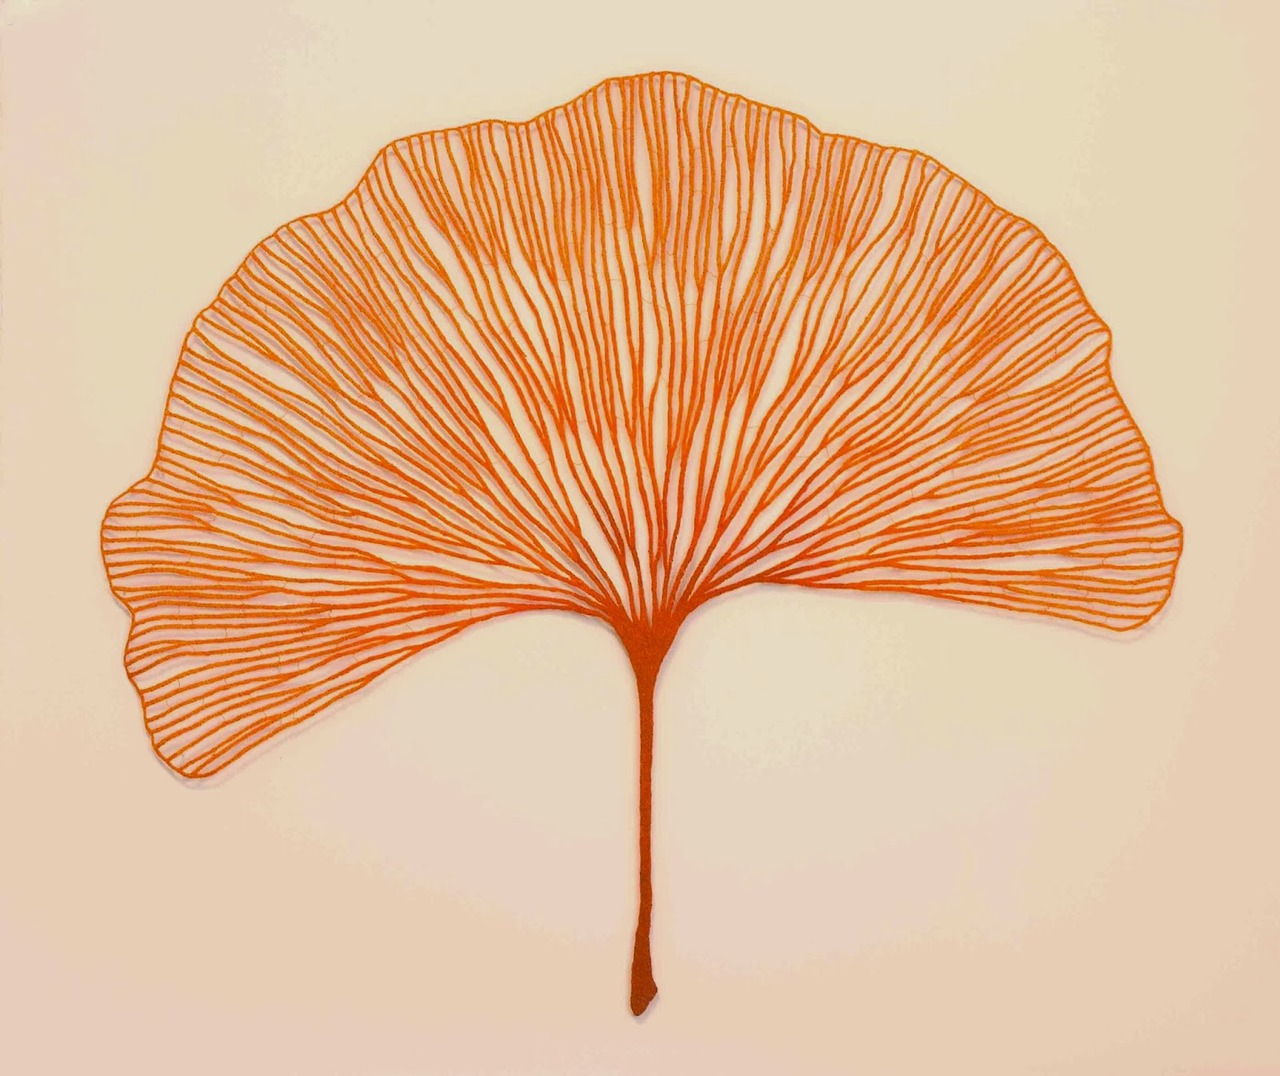 Meredith Woolnough's Embroideries Mimic Delicate Forms of Nature